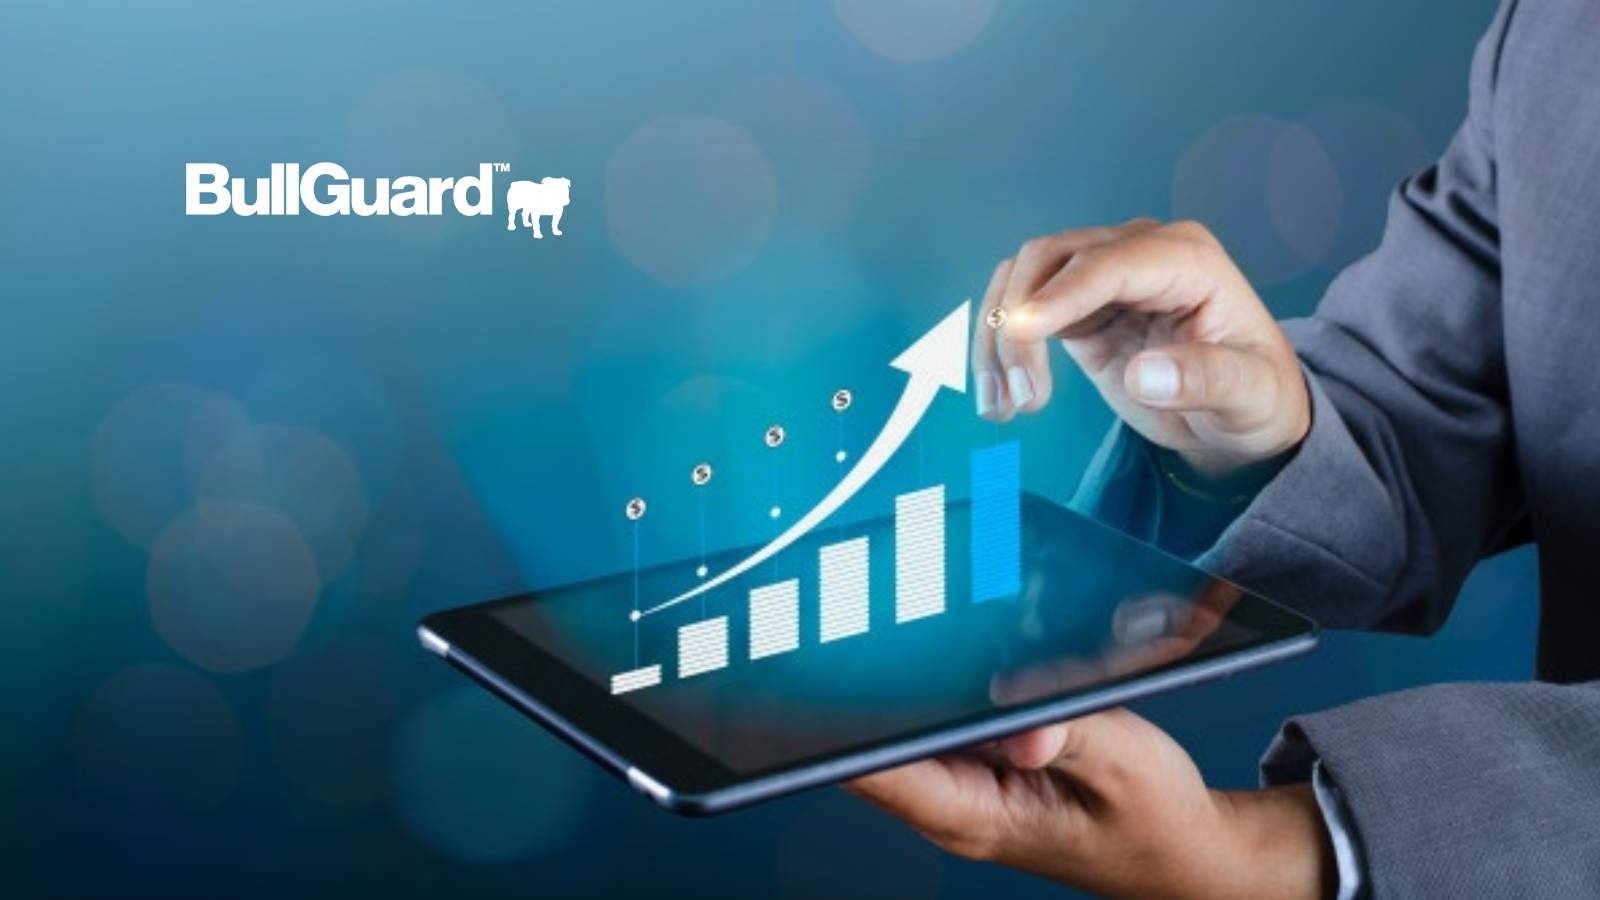 Bullguard Announces Revenue Growth And Customer Expansion Opportunities